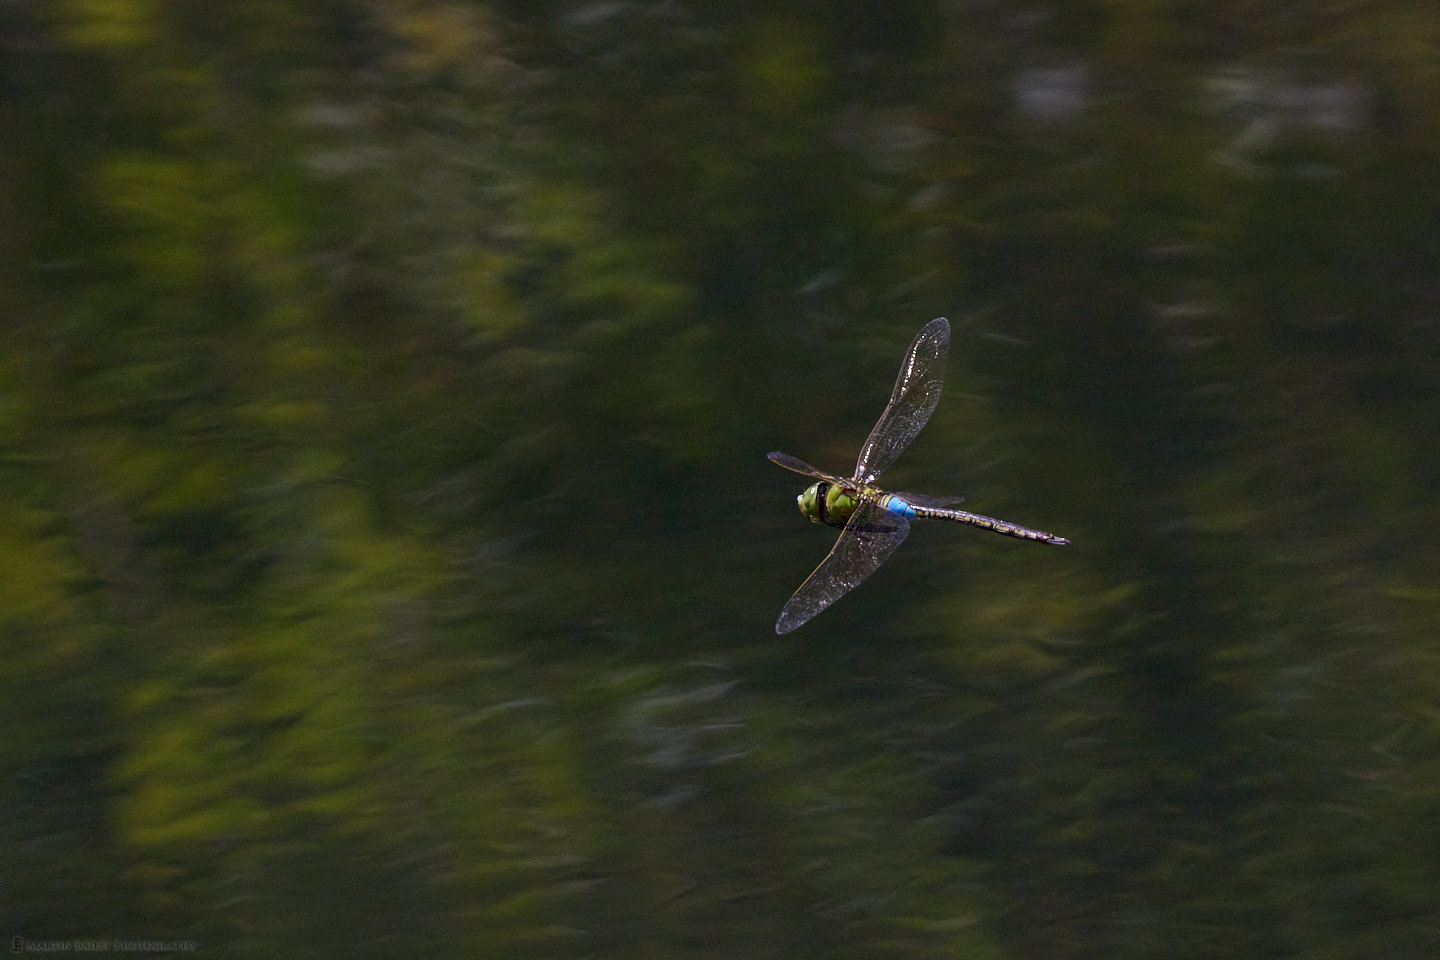 Lesser Emperor Dragonfly in Flight Over Reflected Foliage